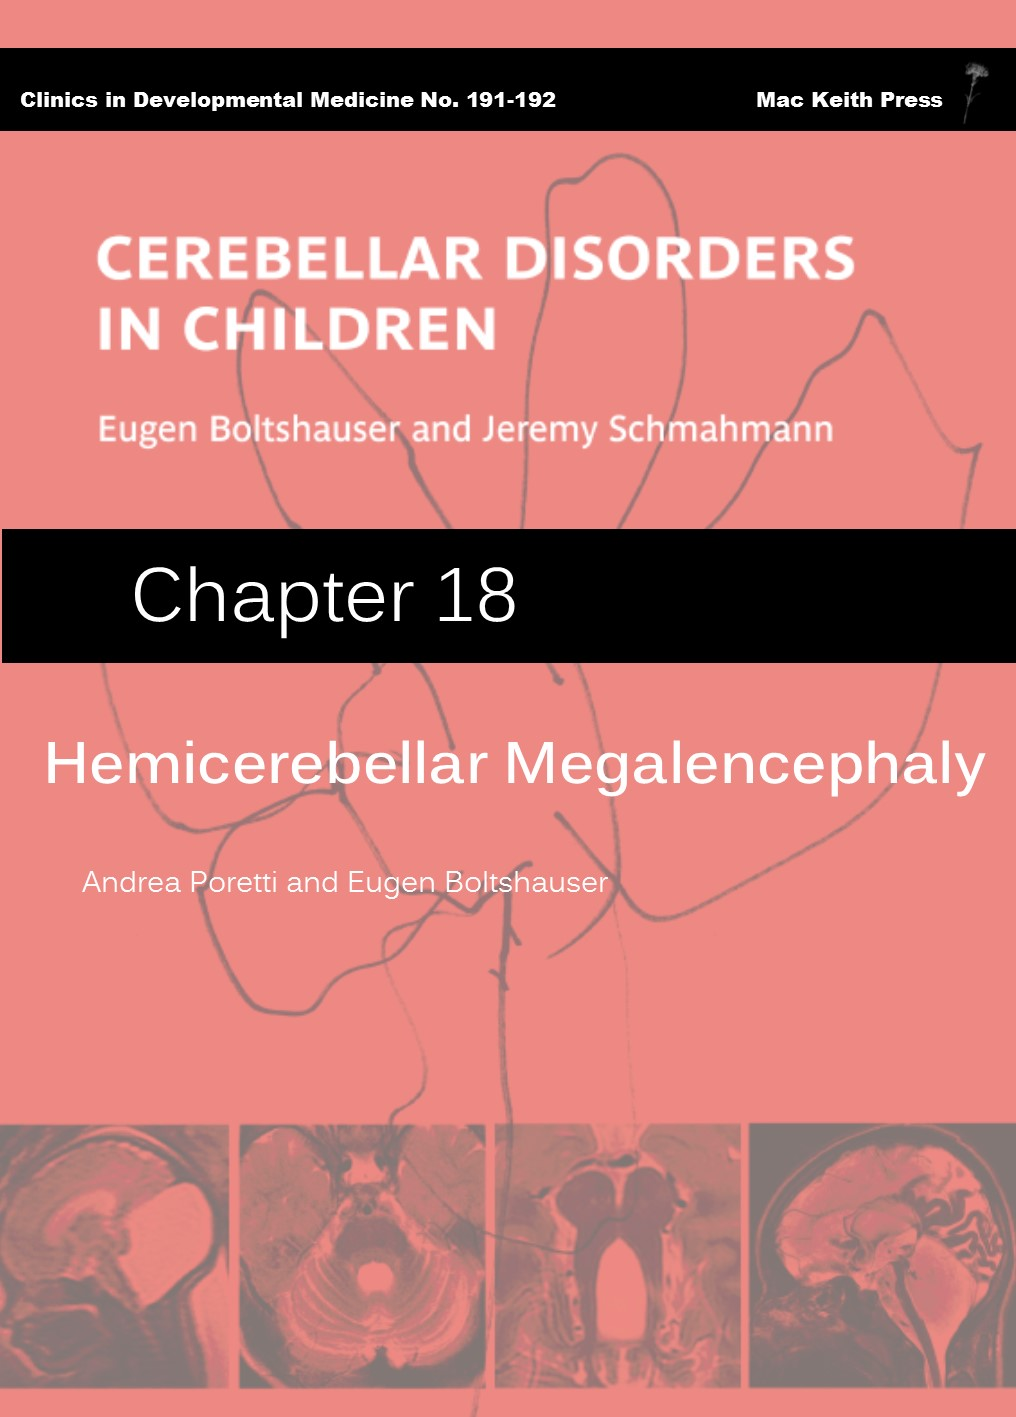 Hemicerebellar Megalencephaly- Cerebellar Disorders in Children (Chapter 18) COVER